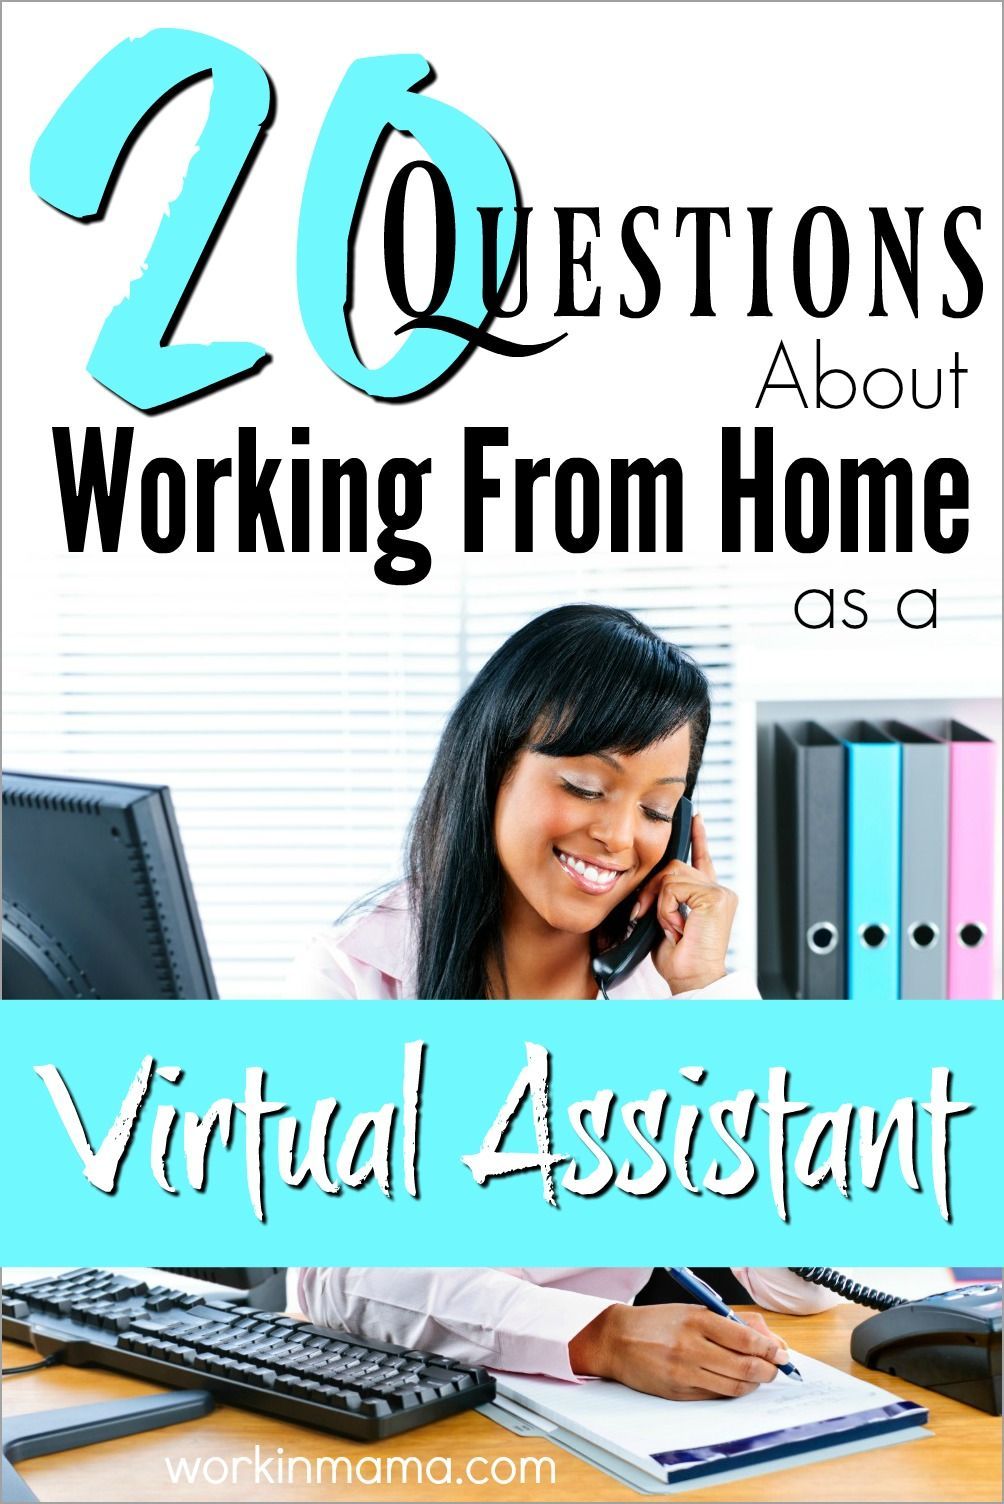 Work From Home as a Virtual Assistant 20 Questions (With